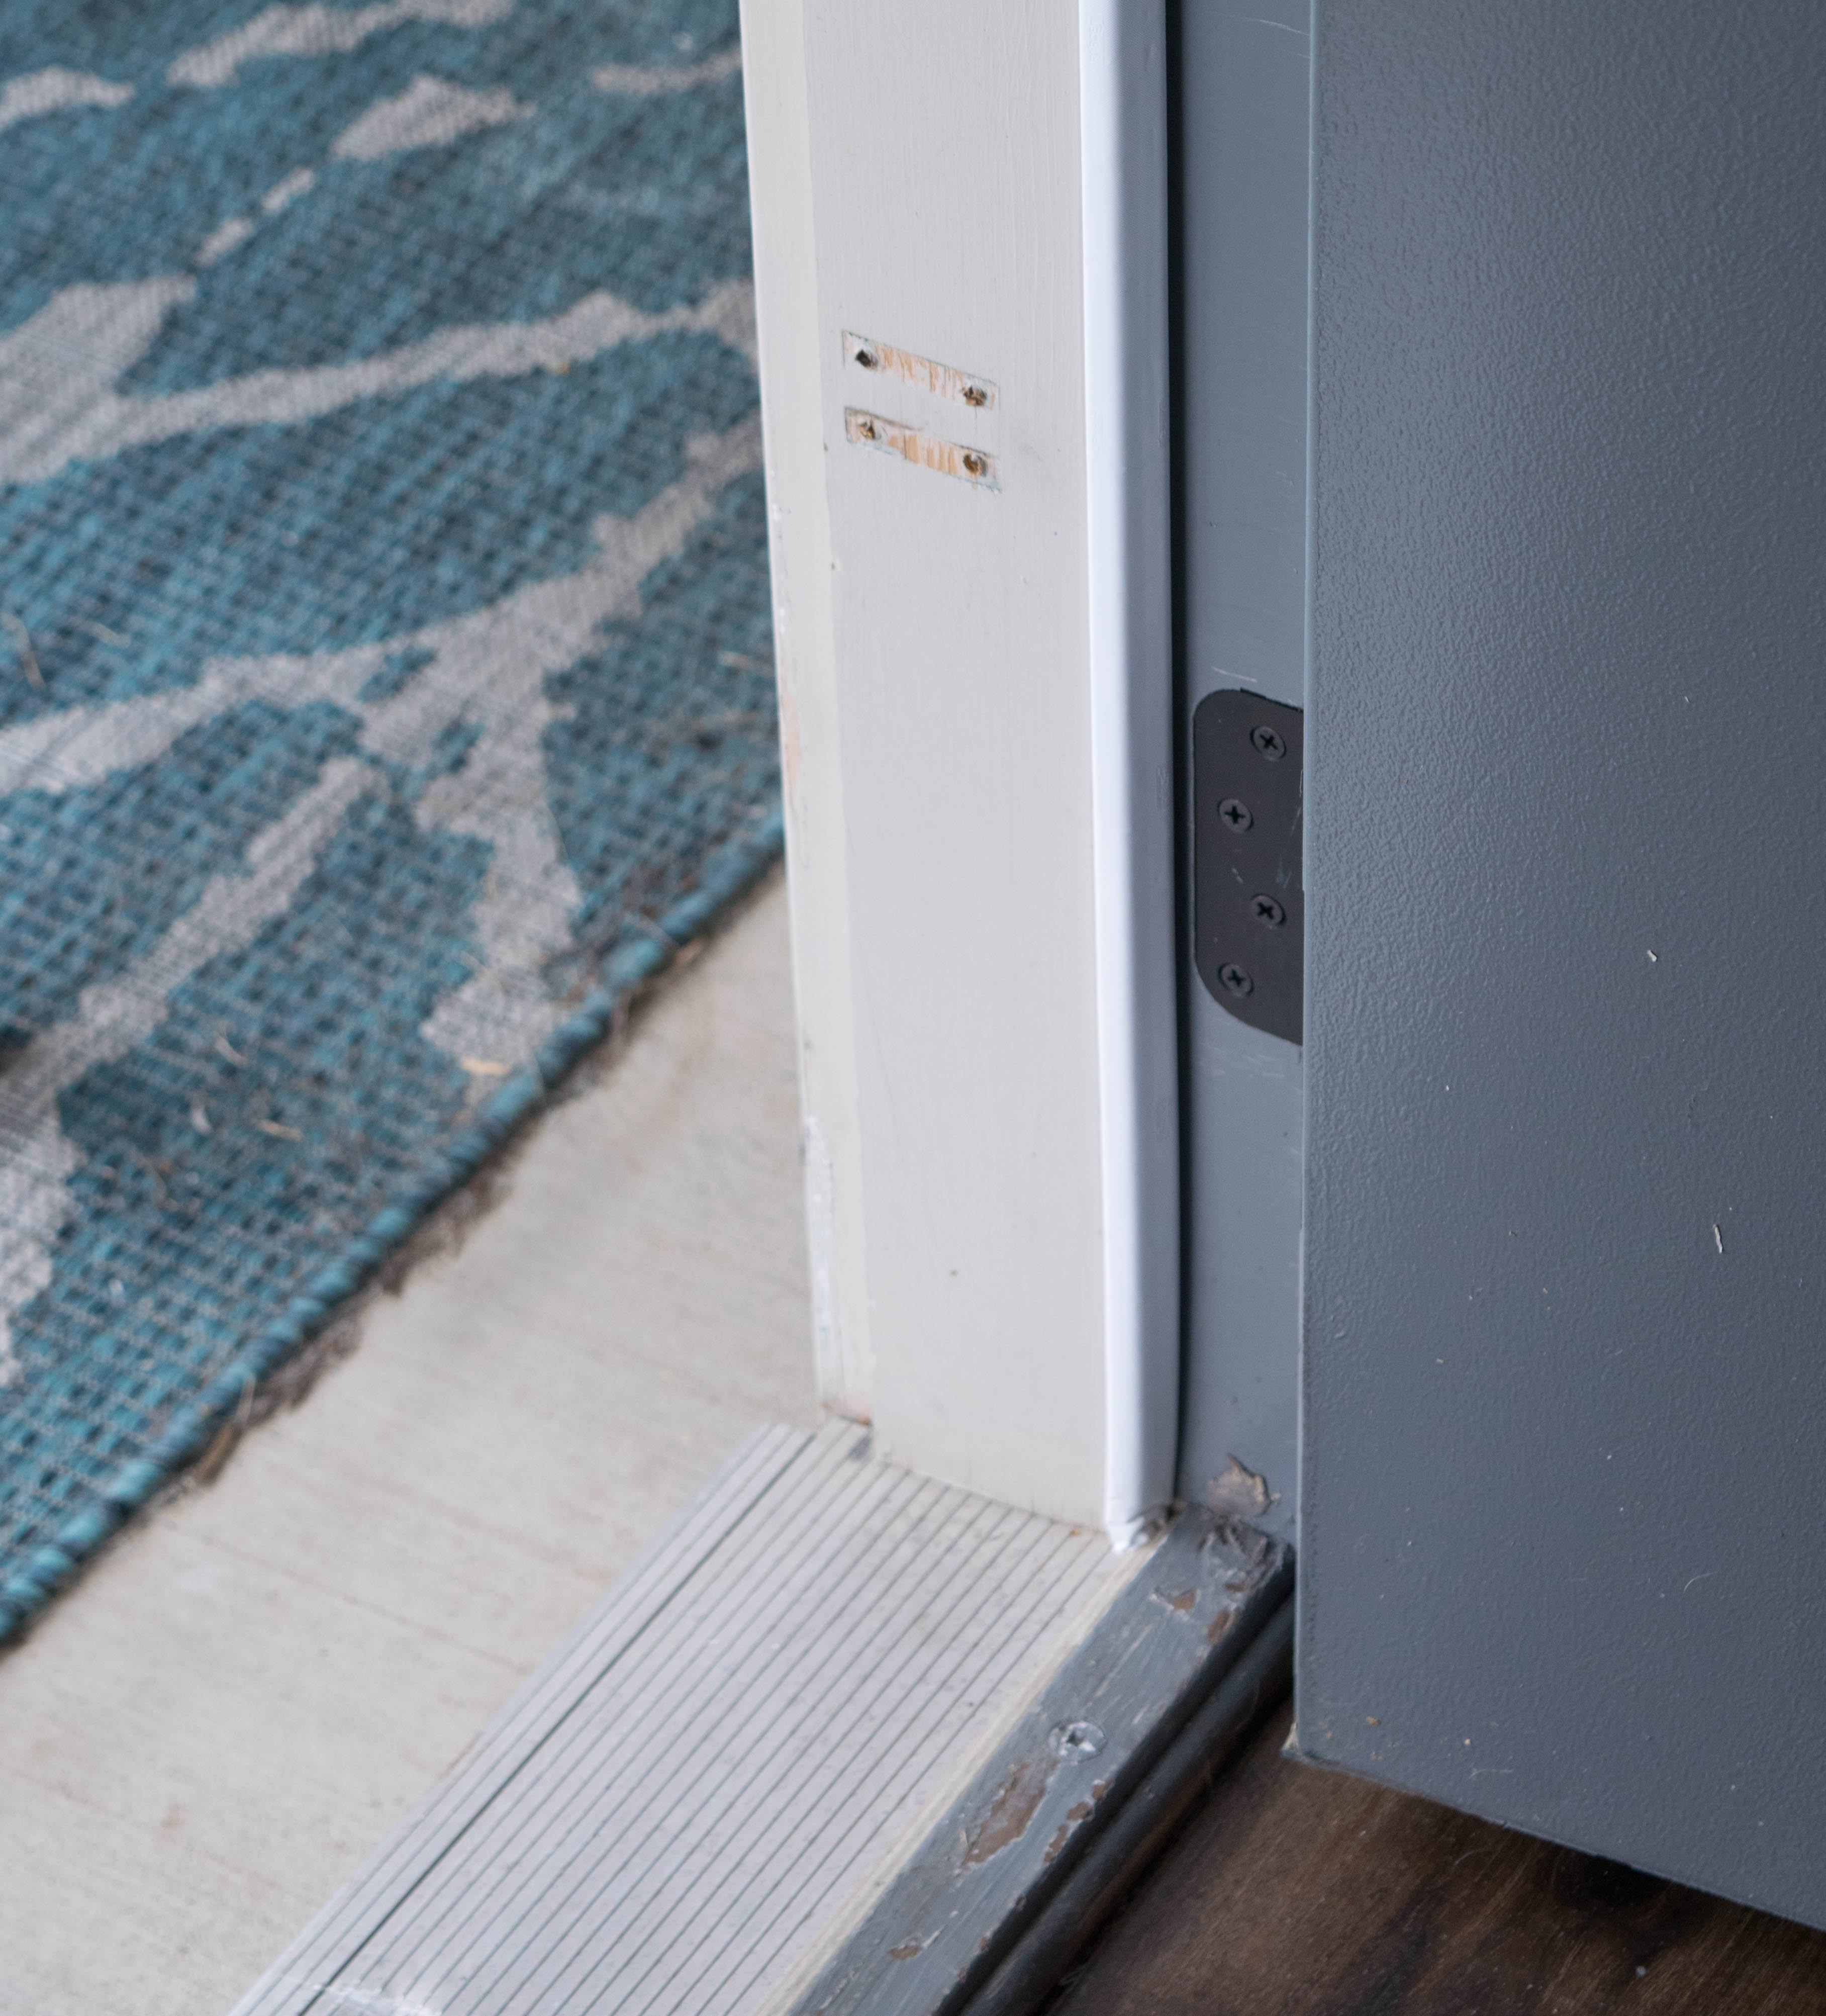 How to replace door weatherstrip simple ways to improve a home 39 s energy efficiency our house - Door cushion pads ...